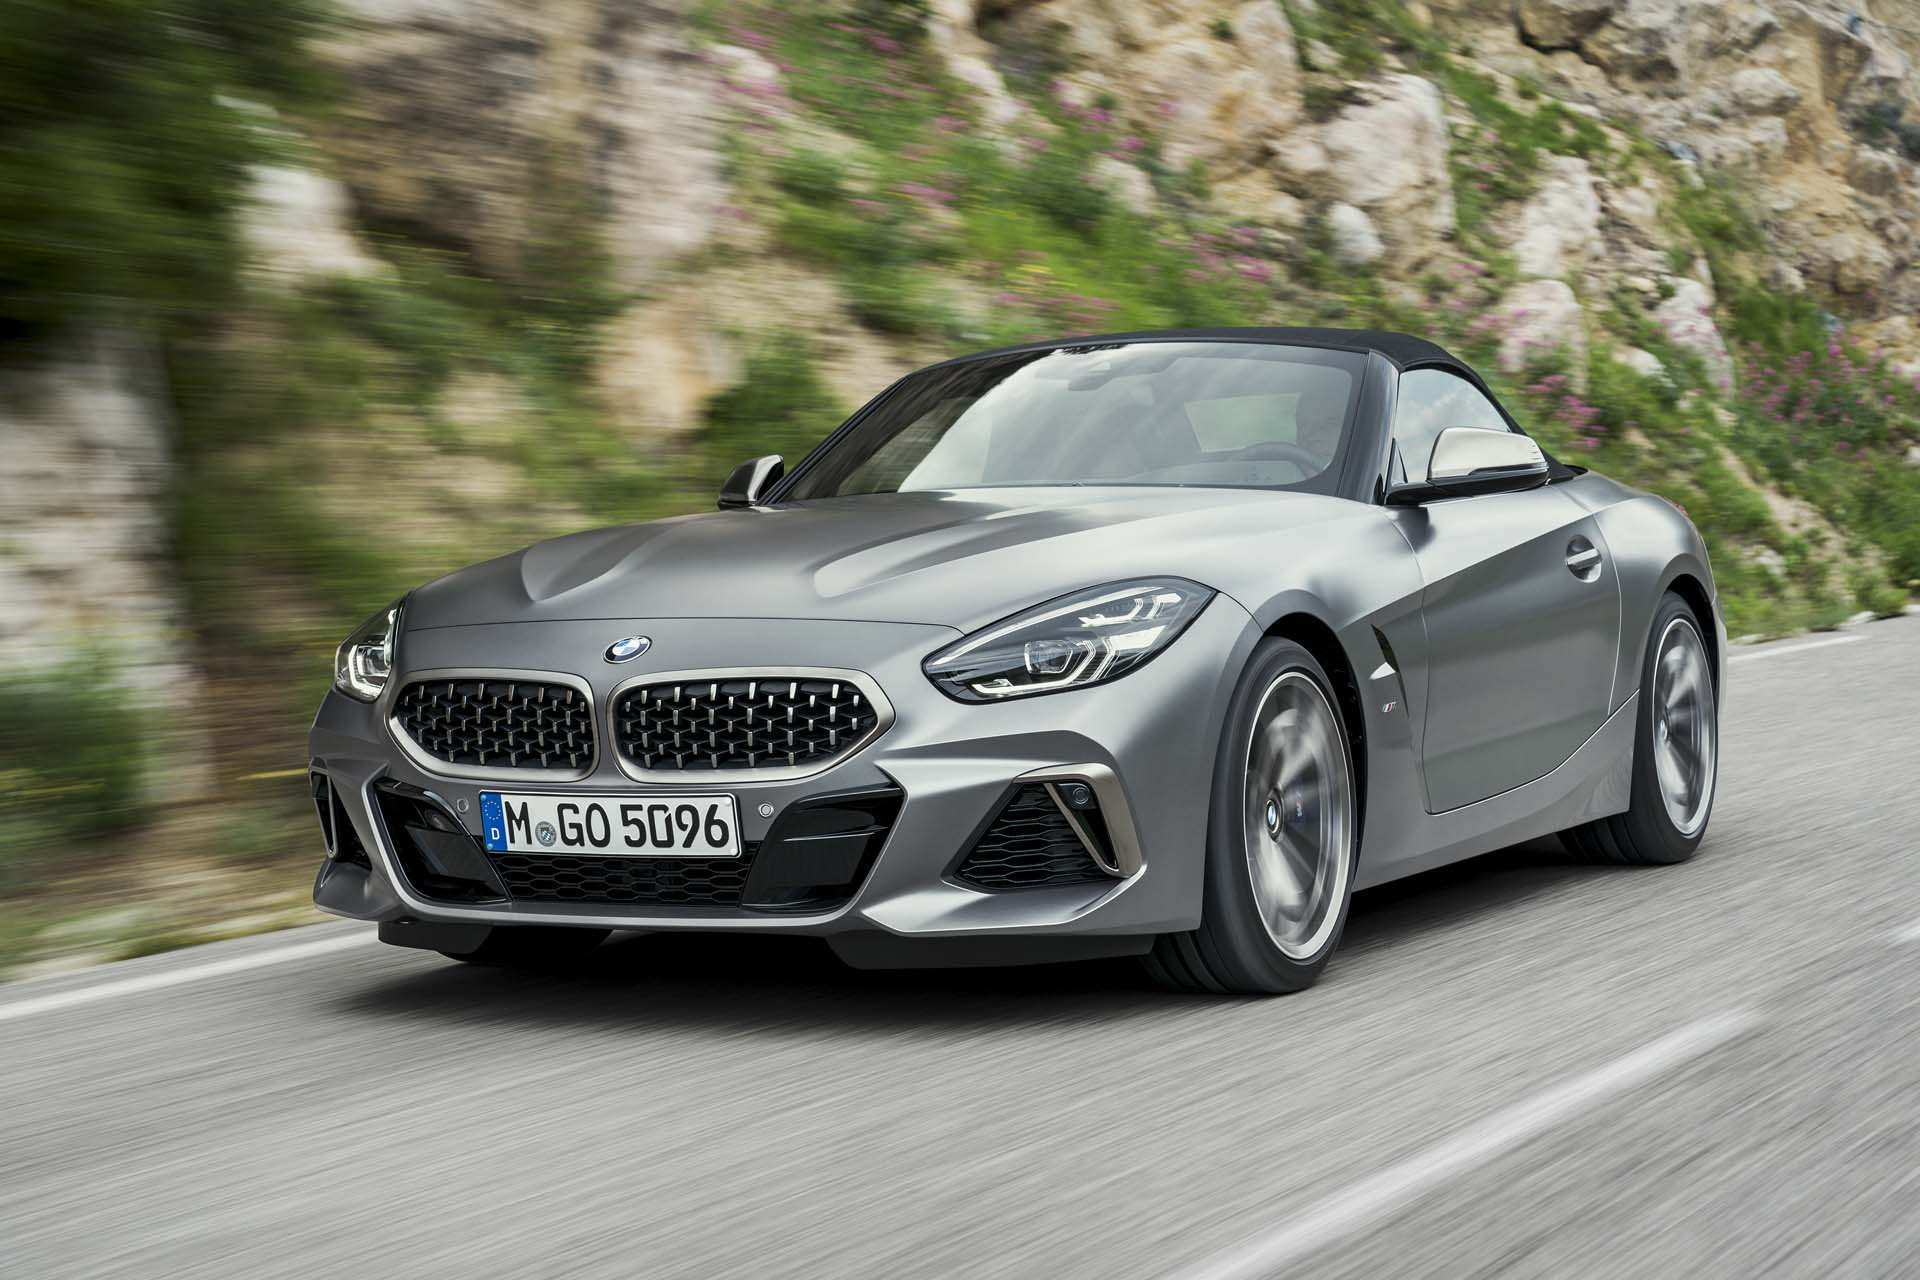 12 All New 2019 BMW Z4 M Roadster Release Date And Concept